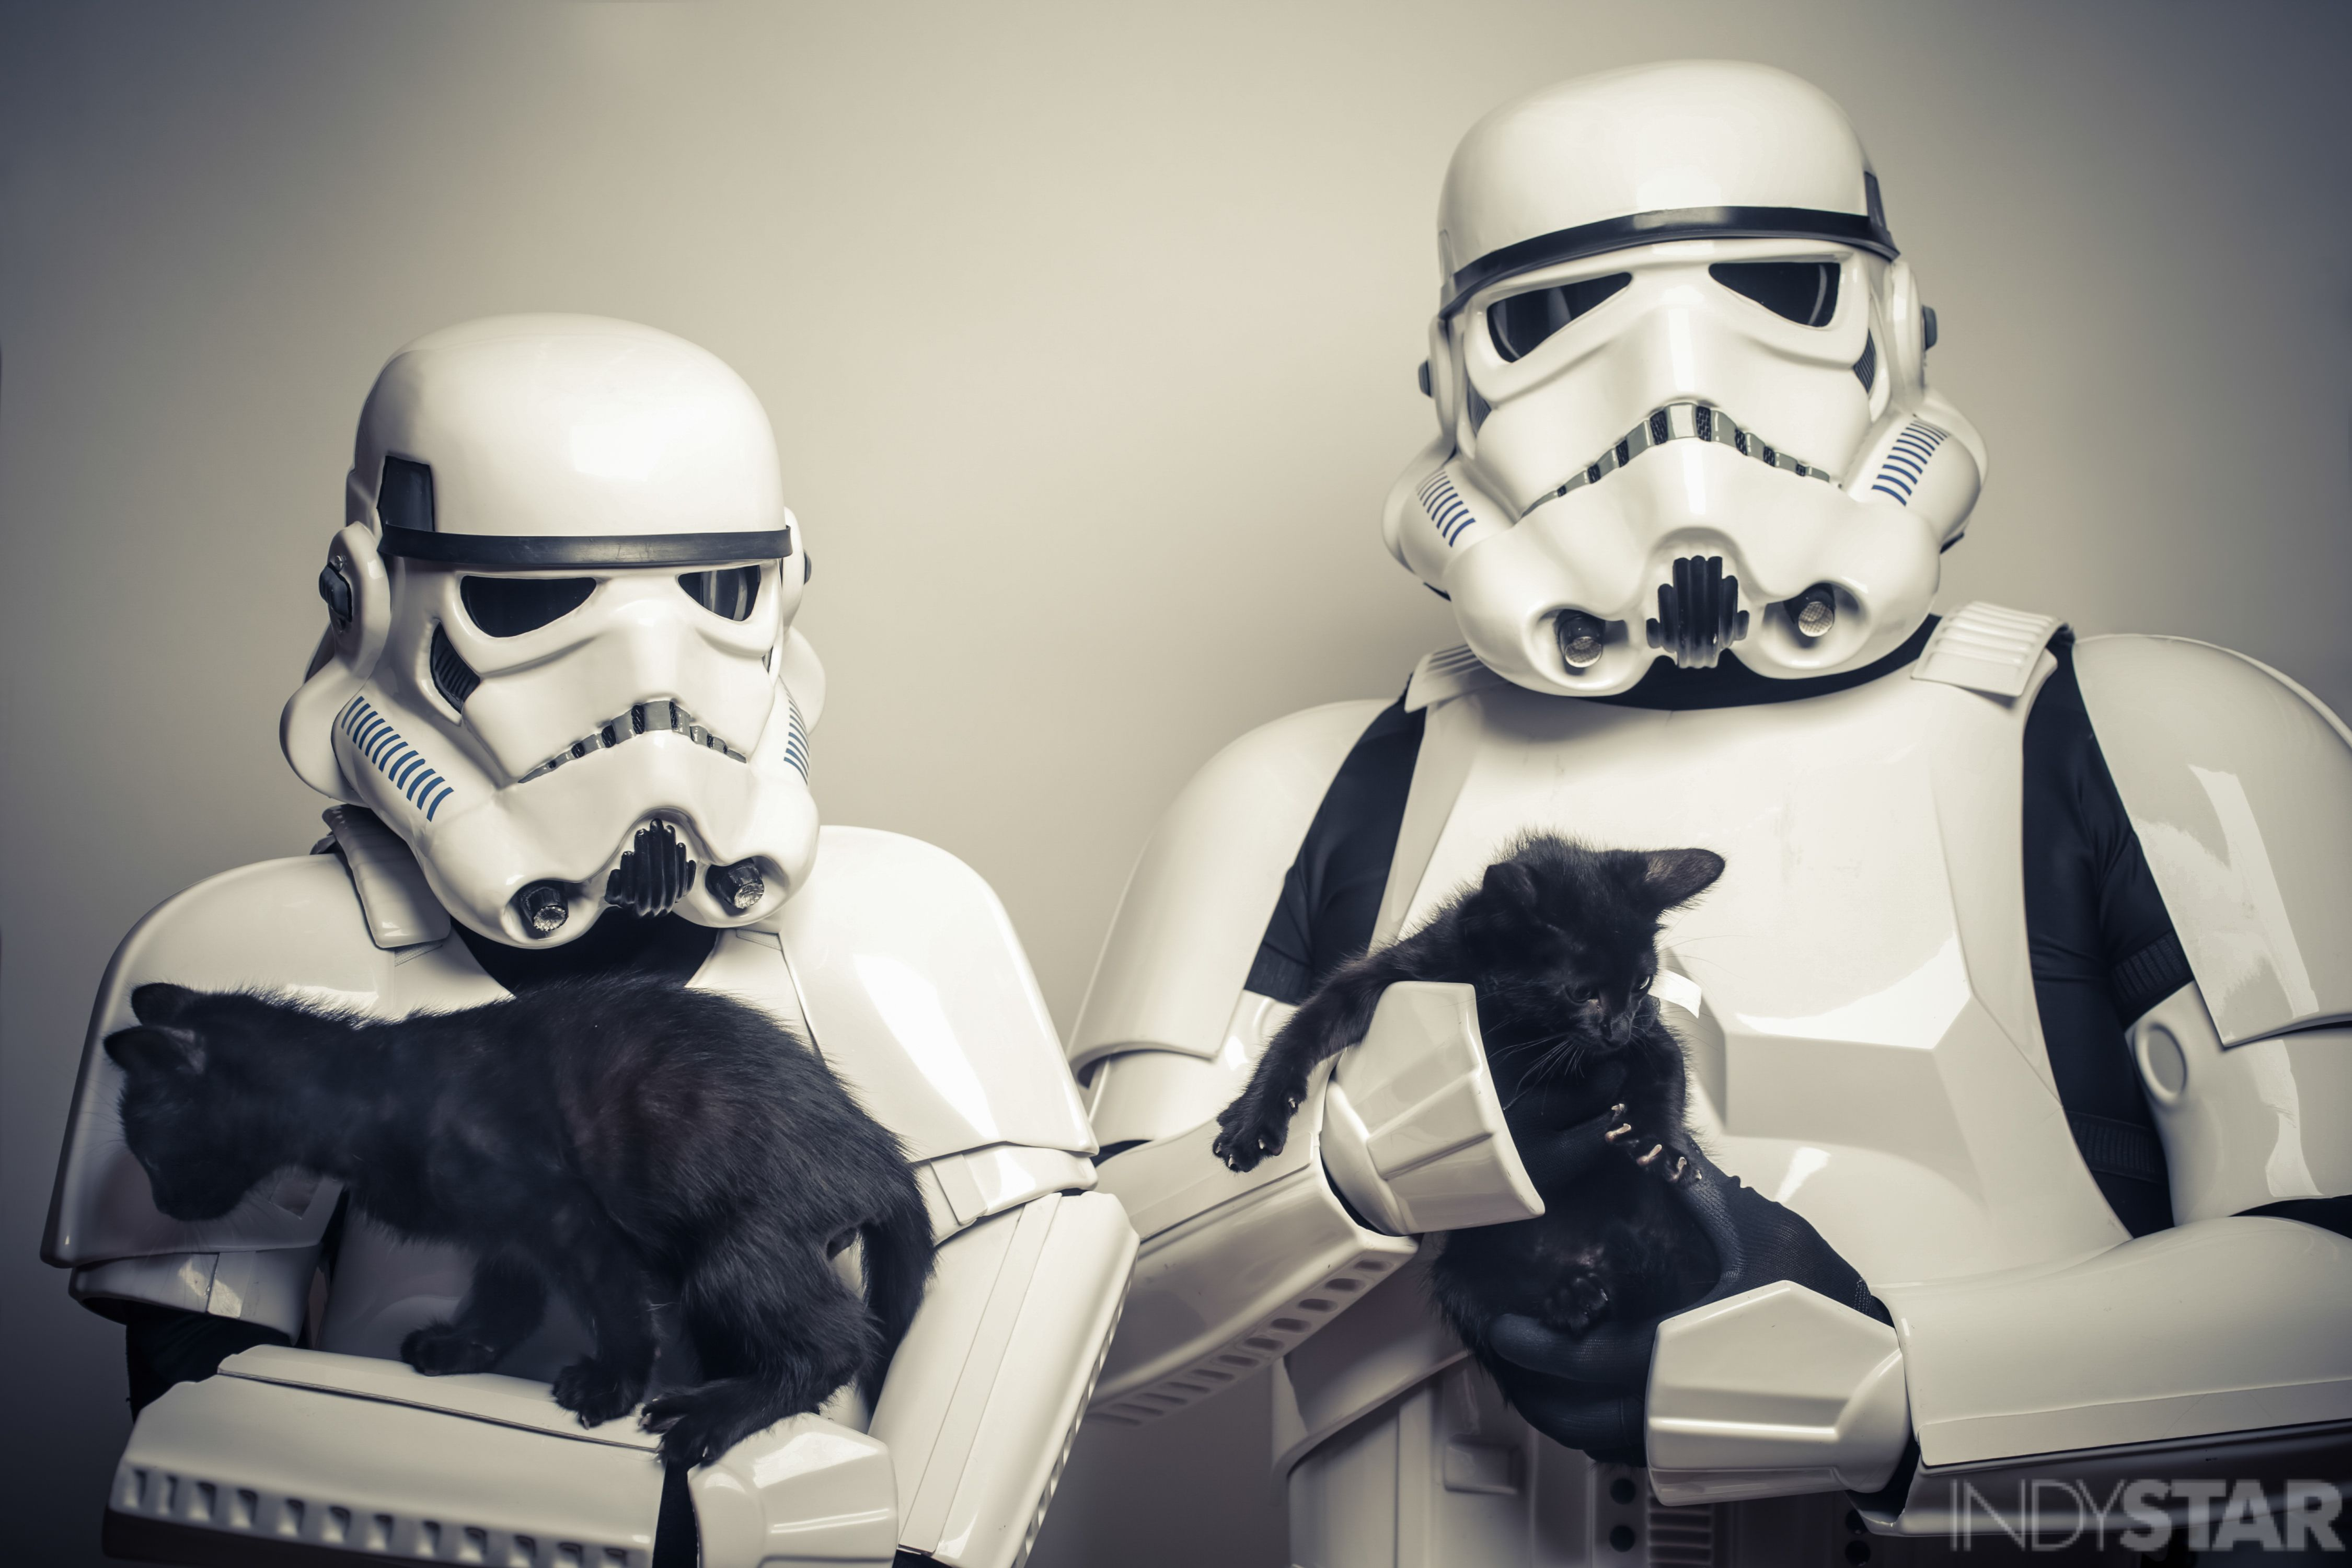 Star Wars, cat, kitten, FACE, Indianapolis Star, force